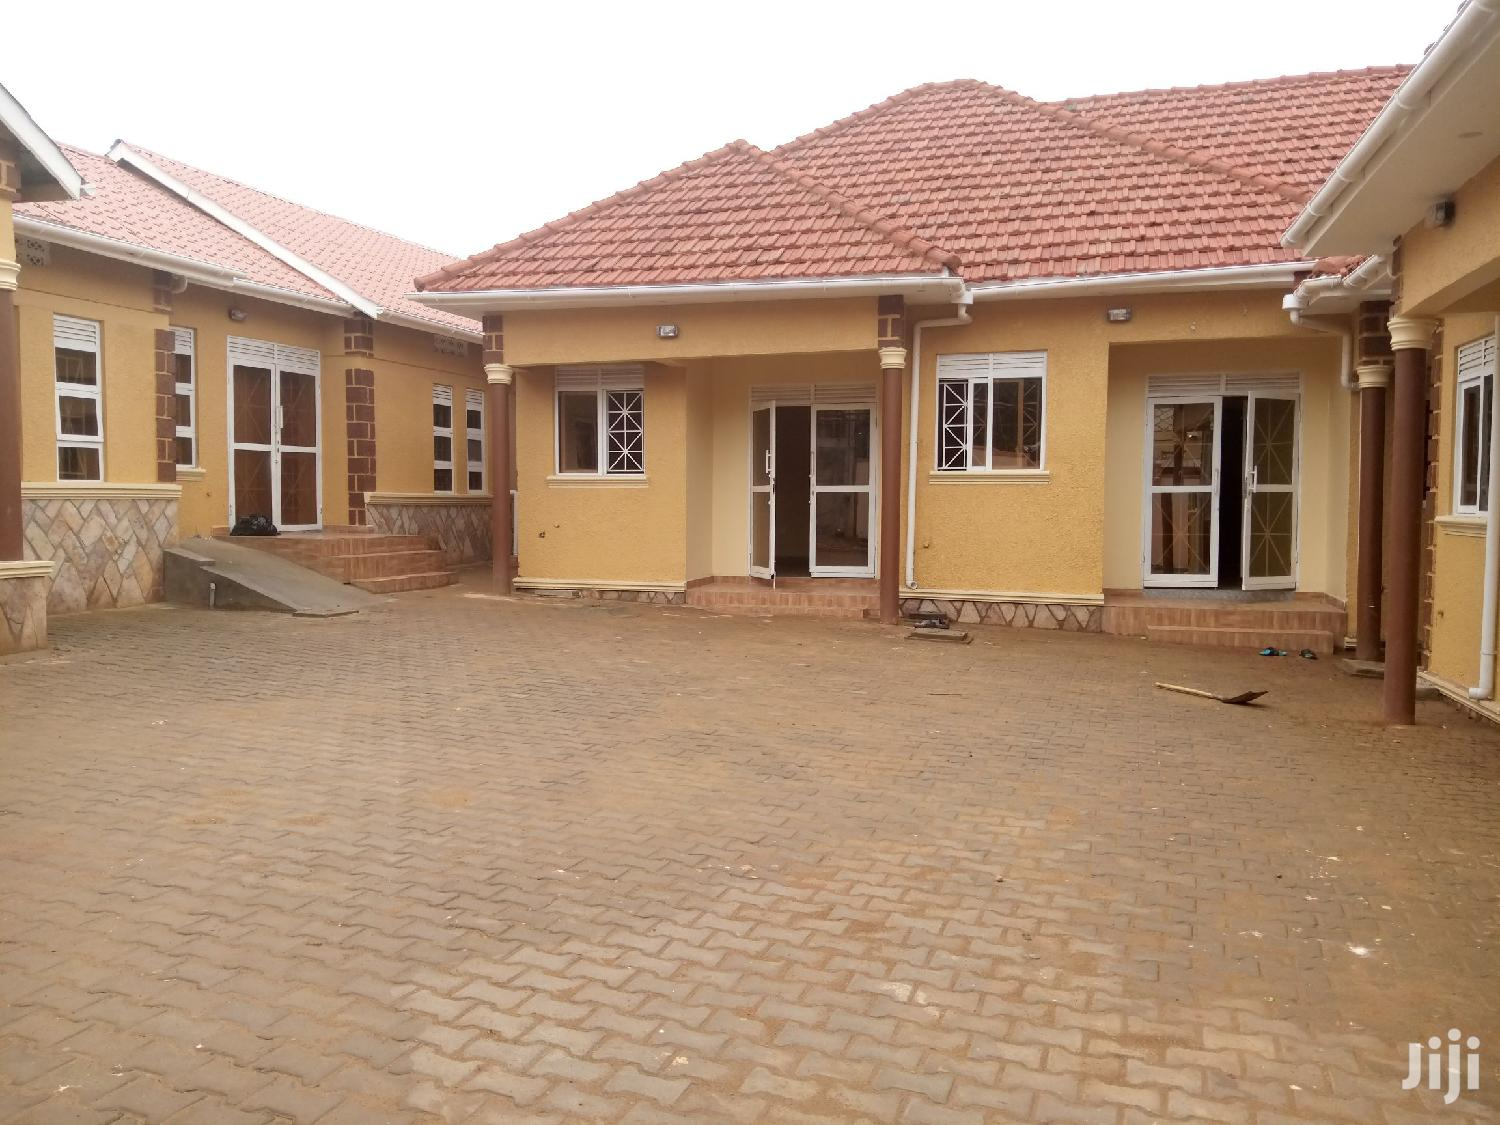 Ntinda One Bedroom House for Rent